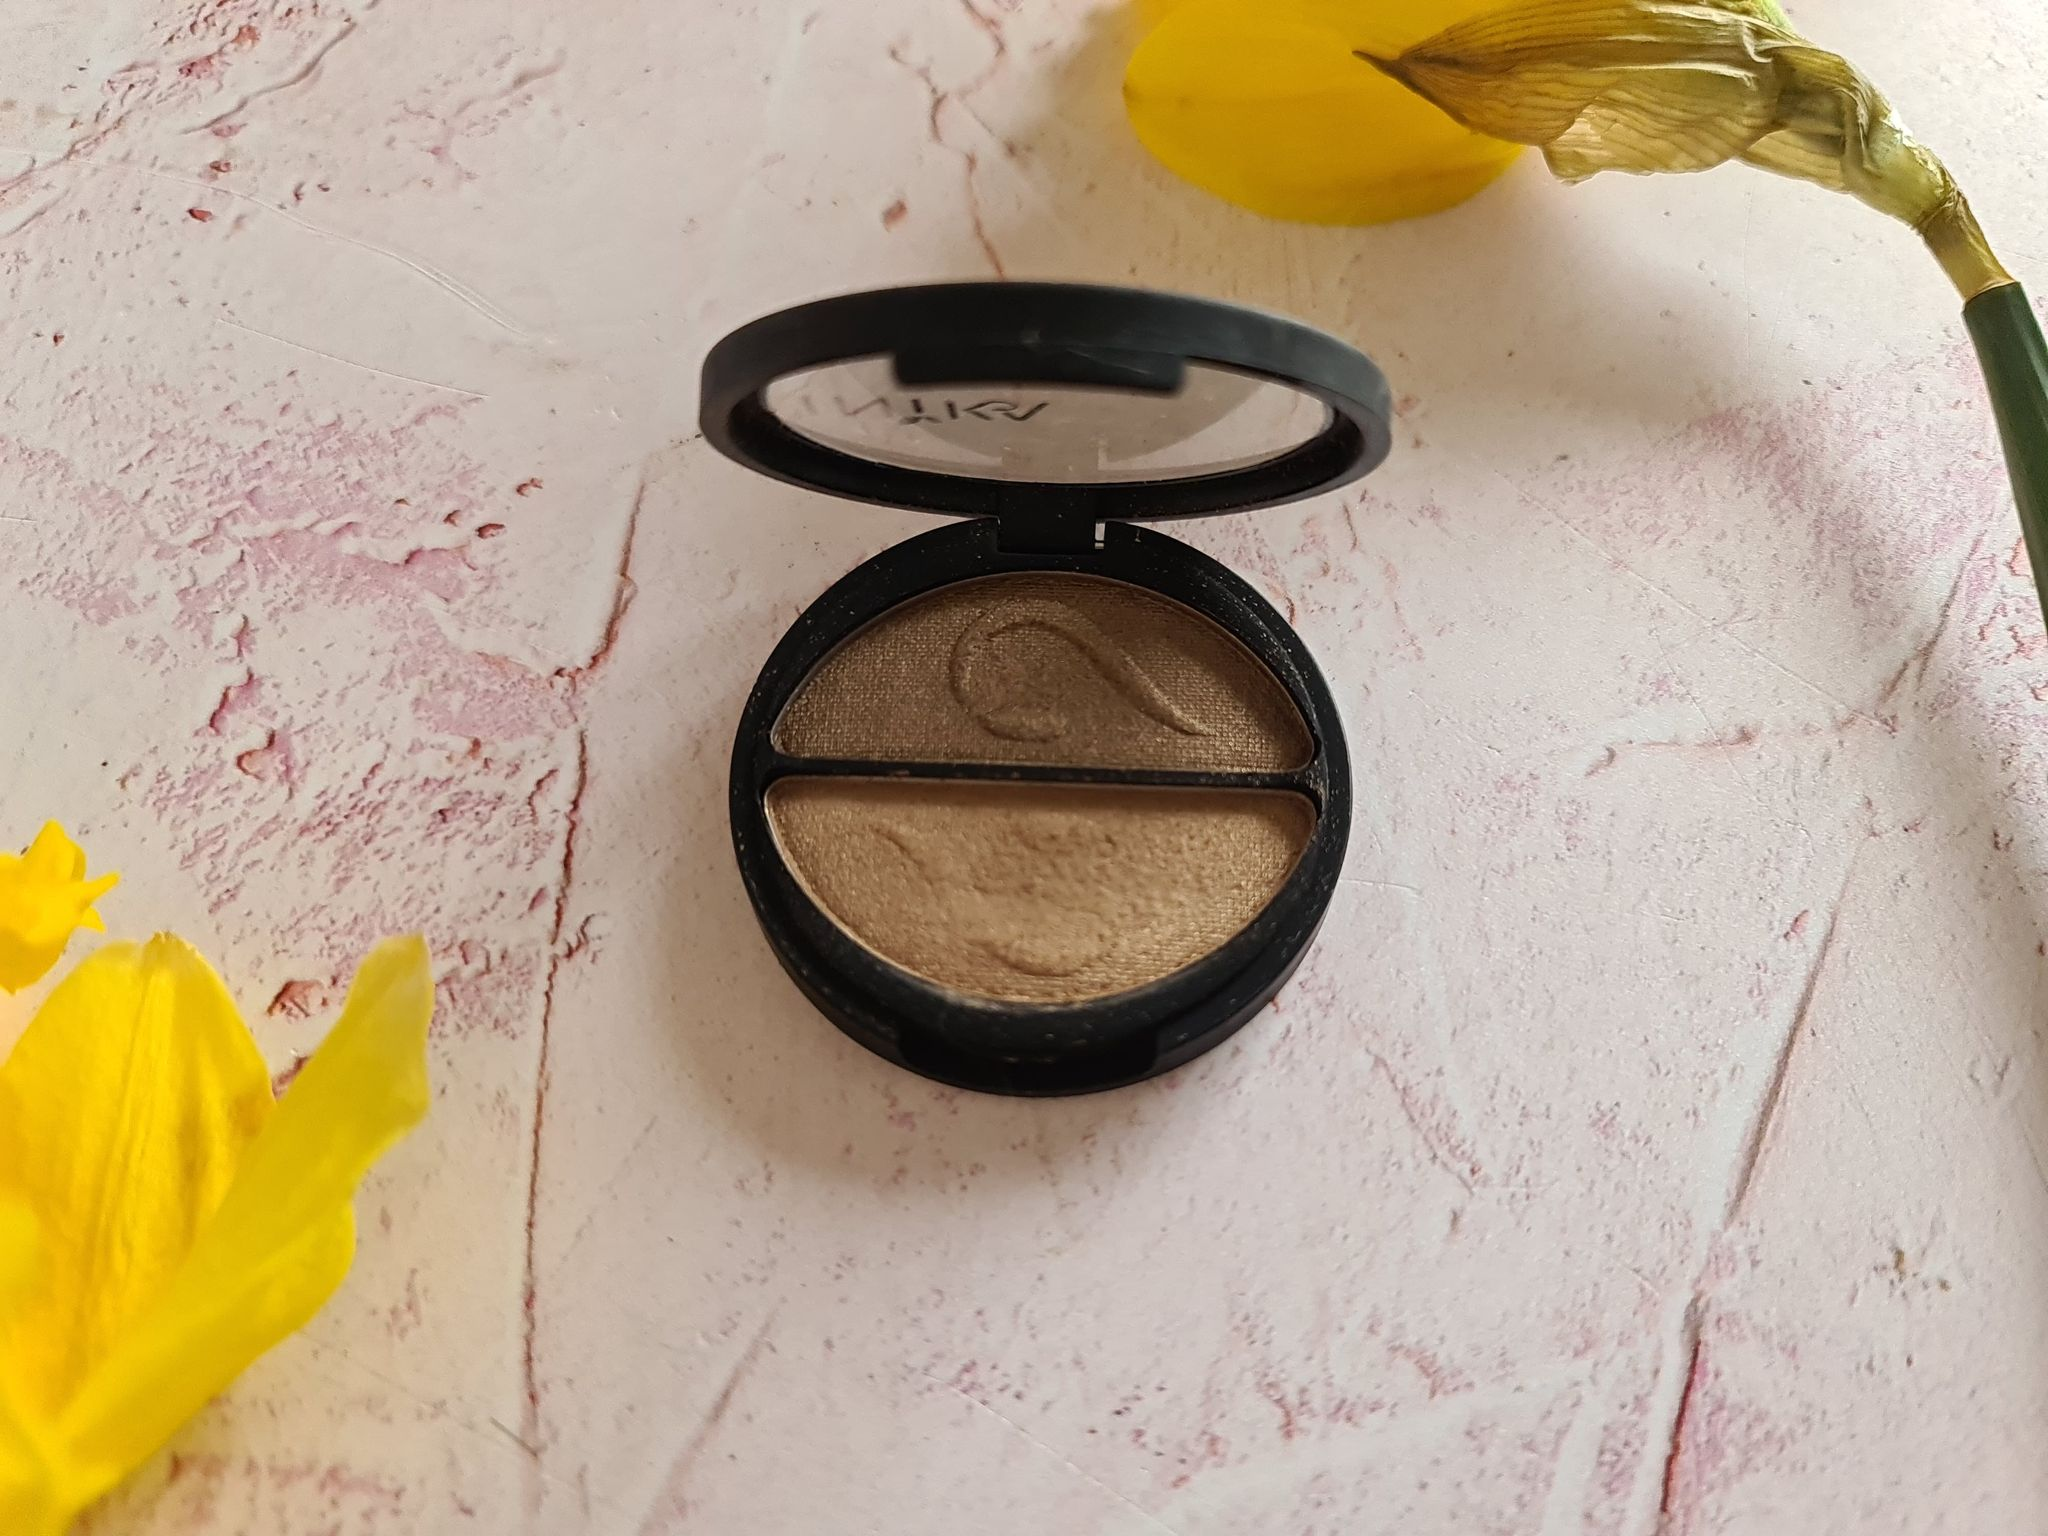 Inika Pressed Mineral Eye Shadow Duo - Gold oyster review